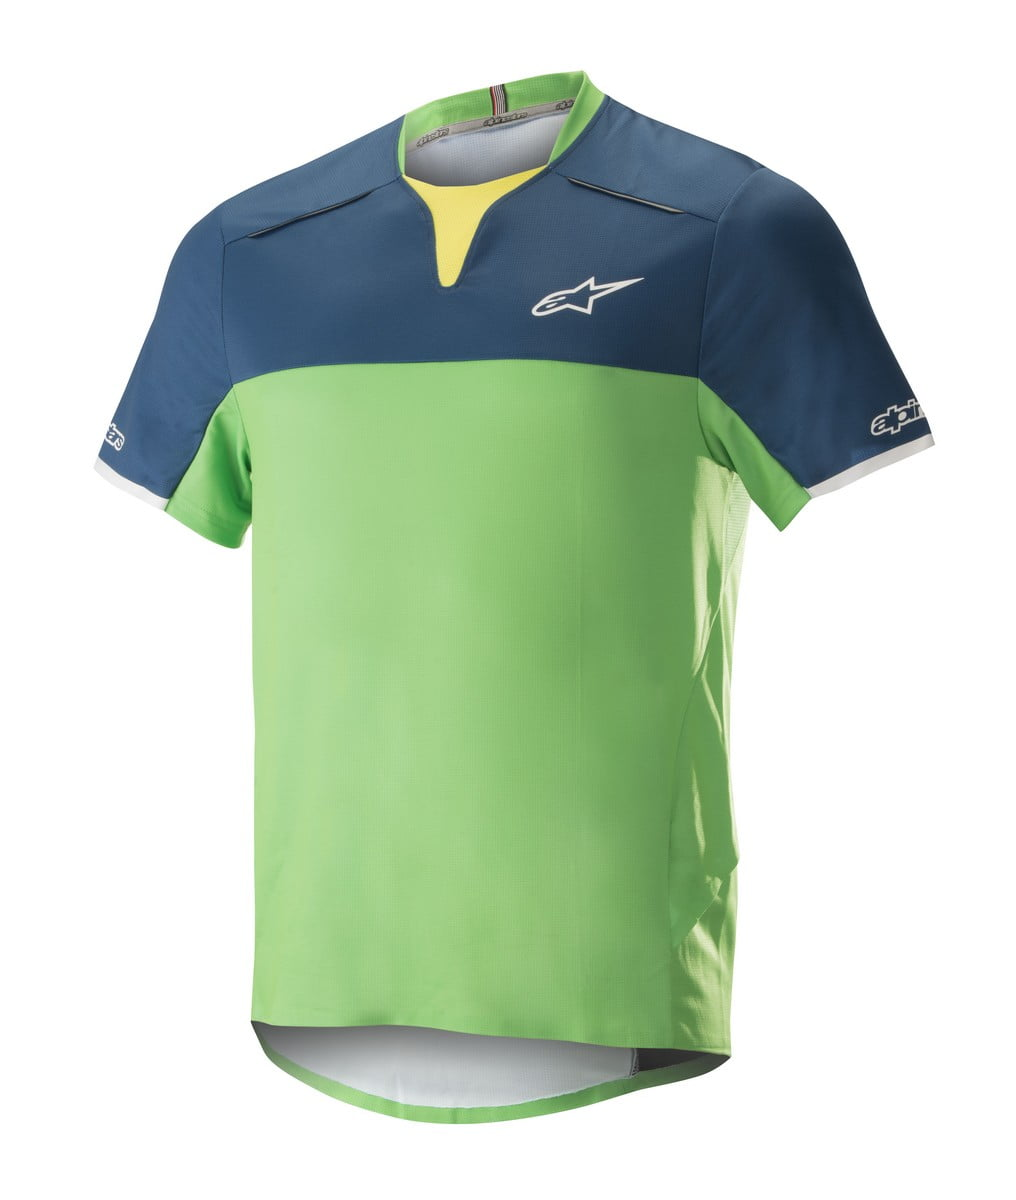 1766518_7096_DROP PRO SS jersey - BlueGreen